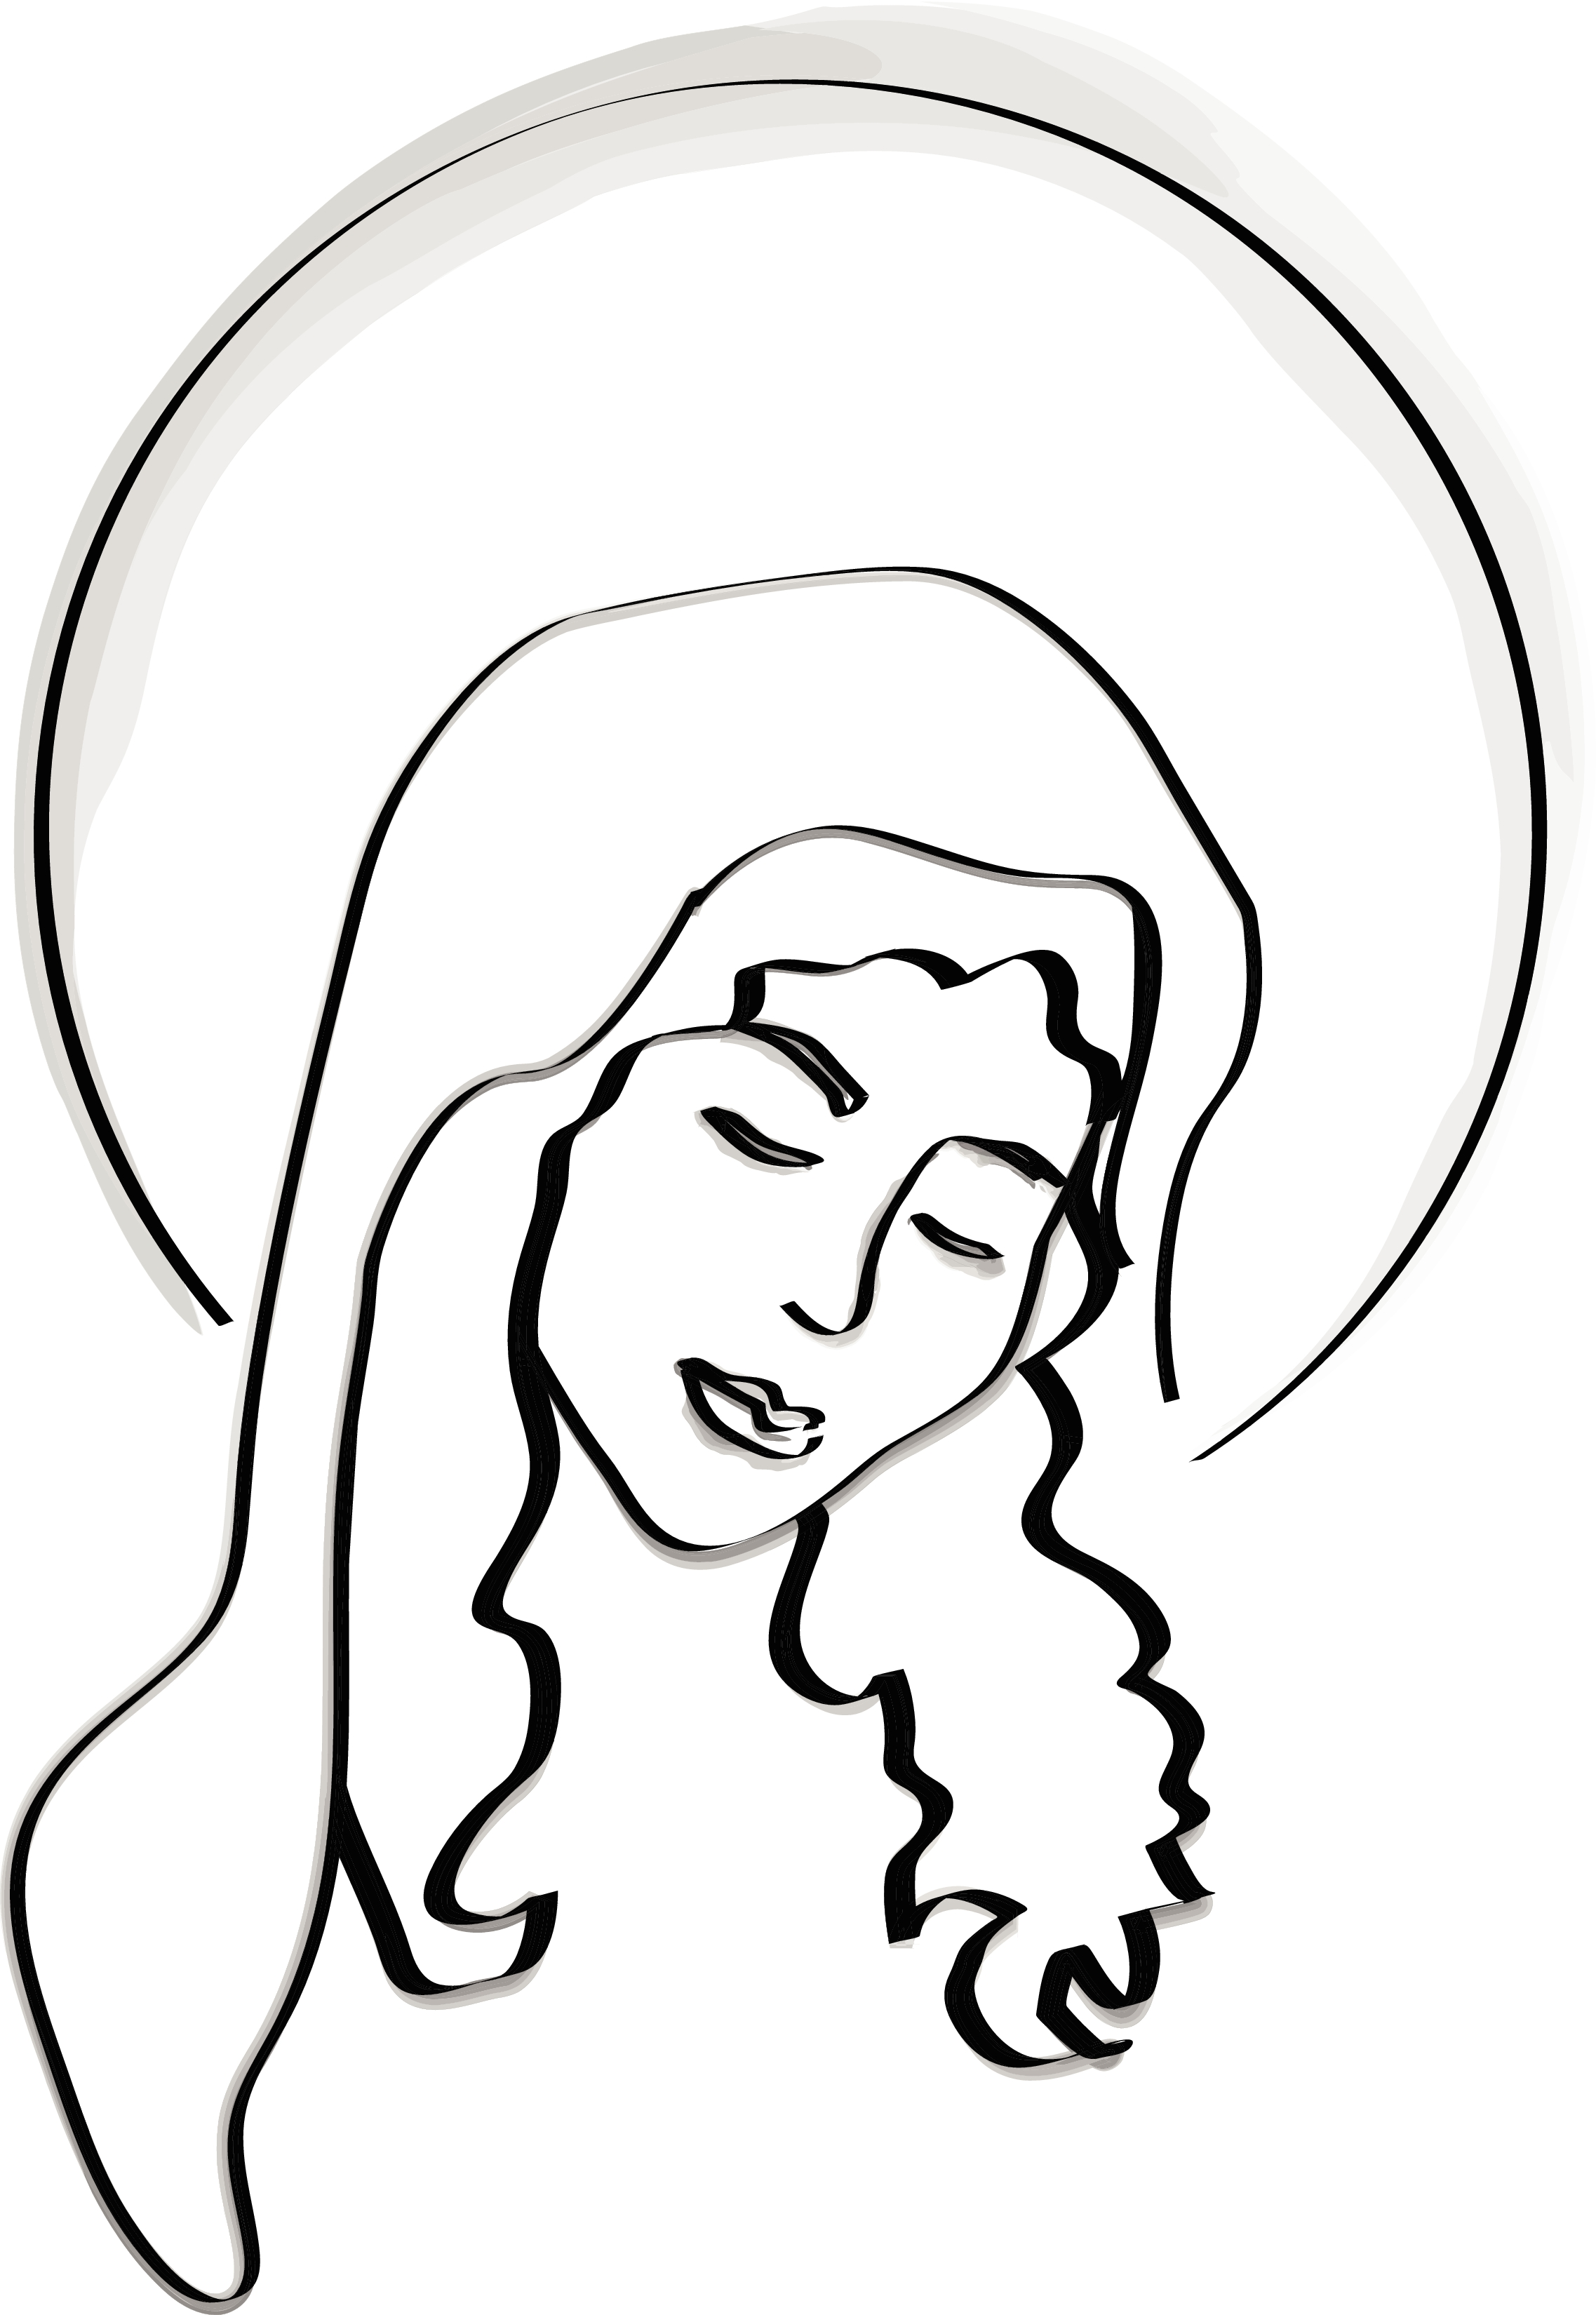 Blessed Virgin Mary Clip Art N2 free image.